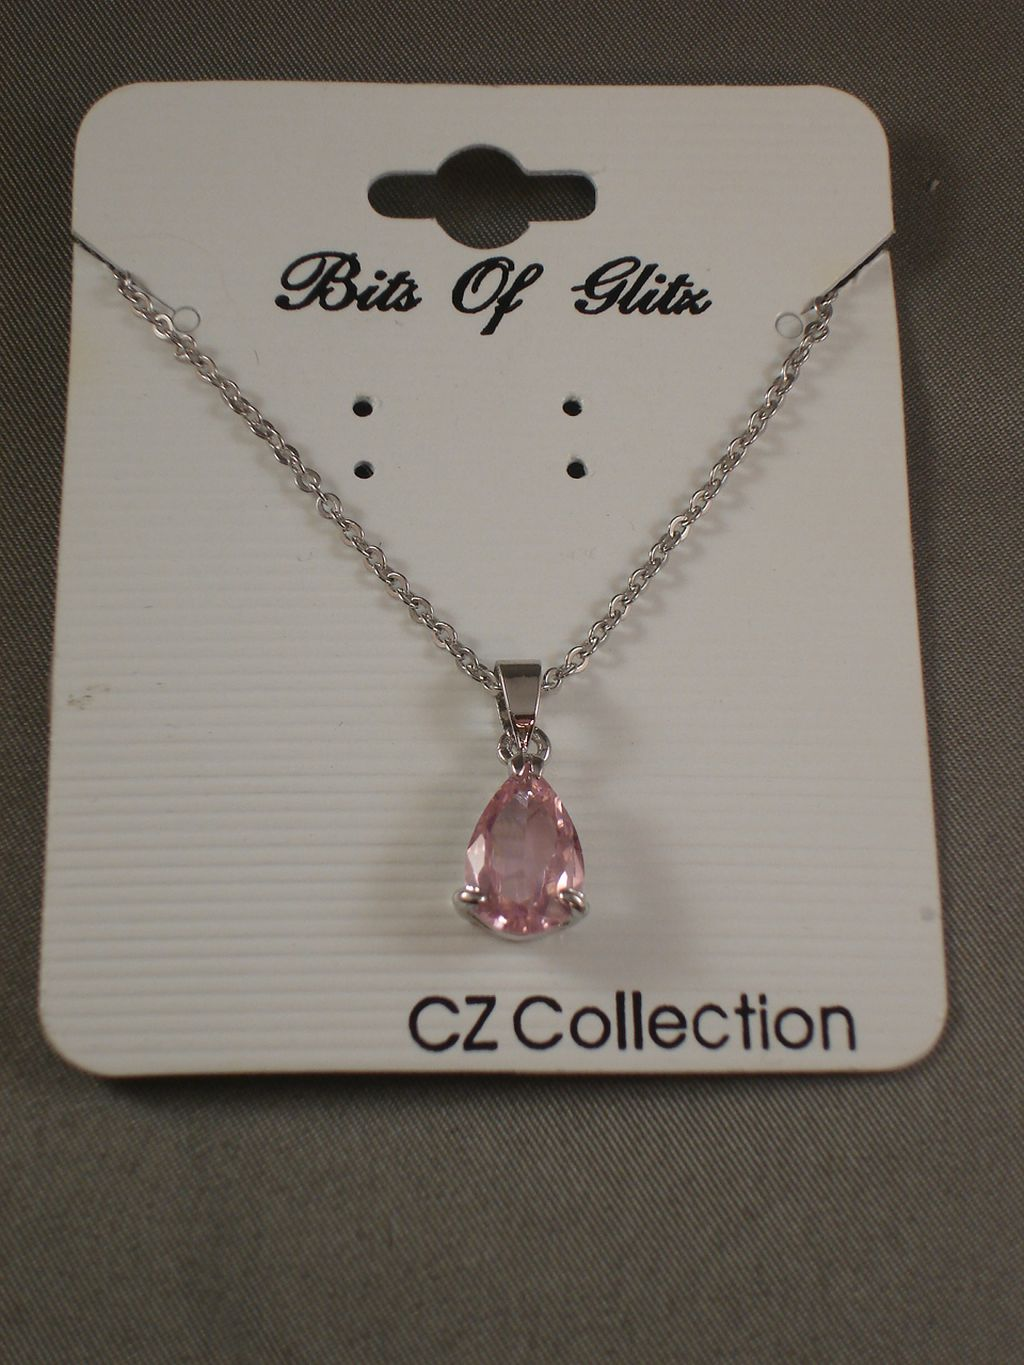 Necklace, Drop Shaped Pink Diamond CZ Cubic Zirconia Pendant, Chain, Sterling Silver Plated Jewelry